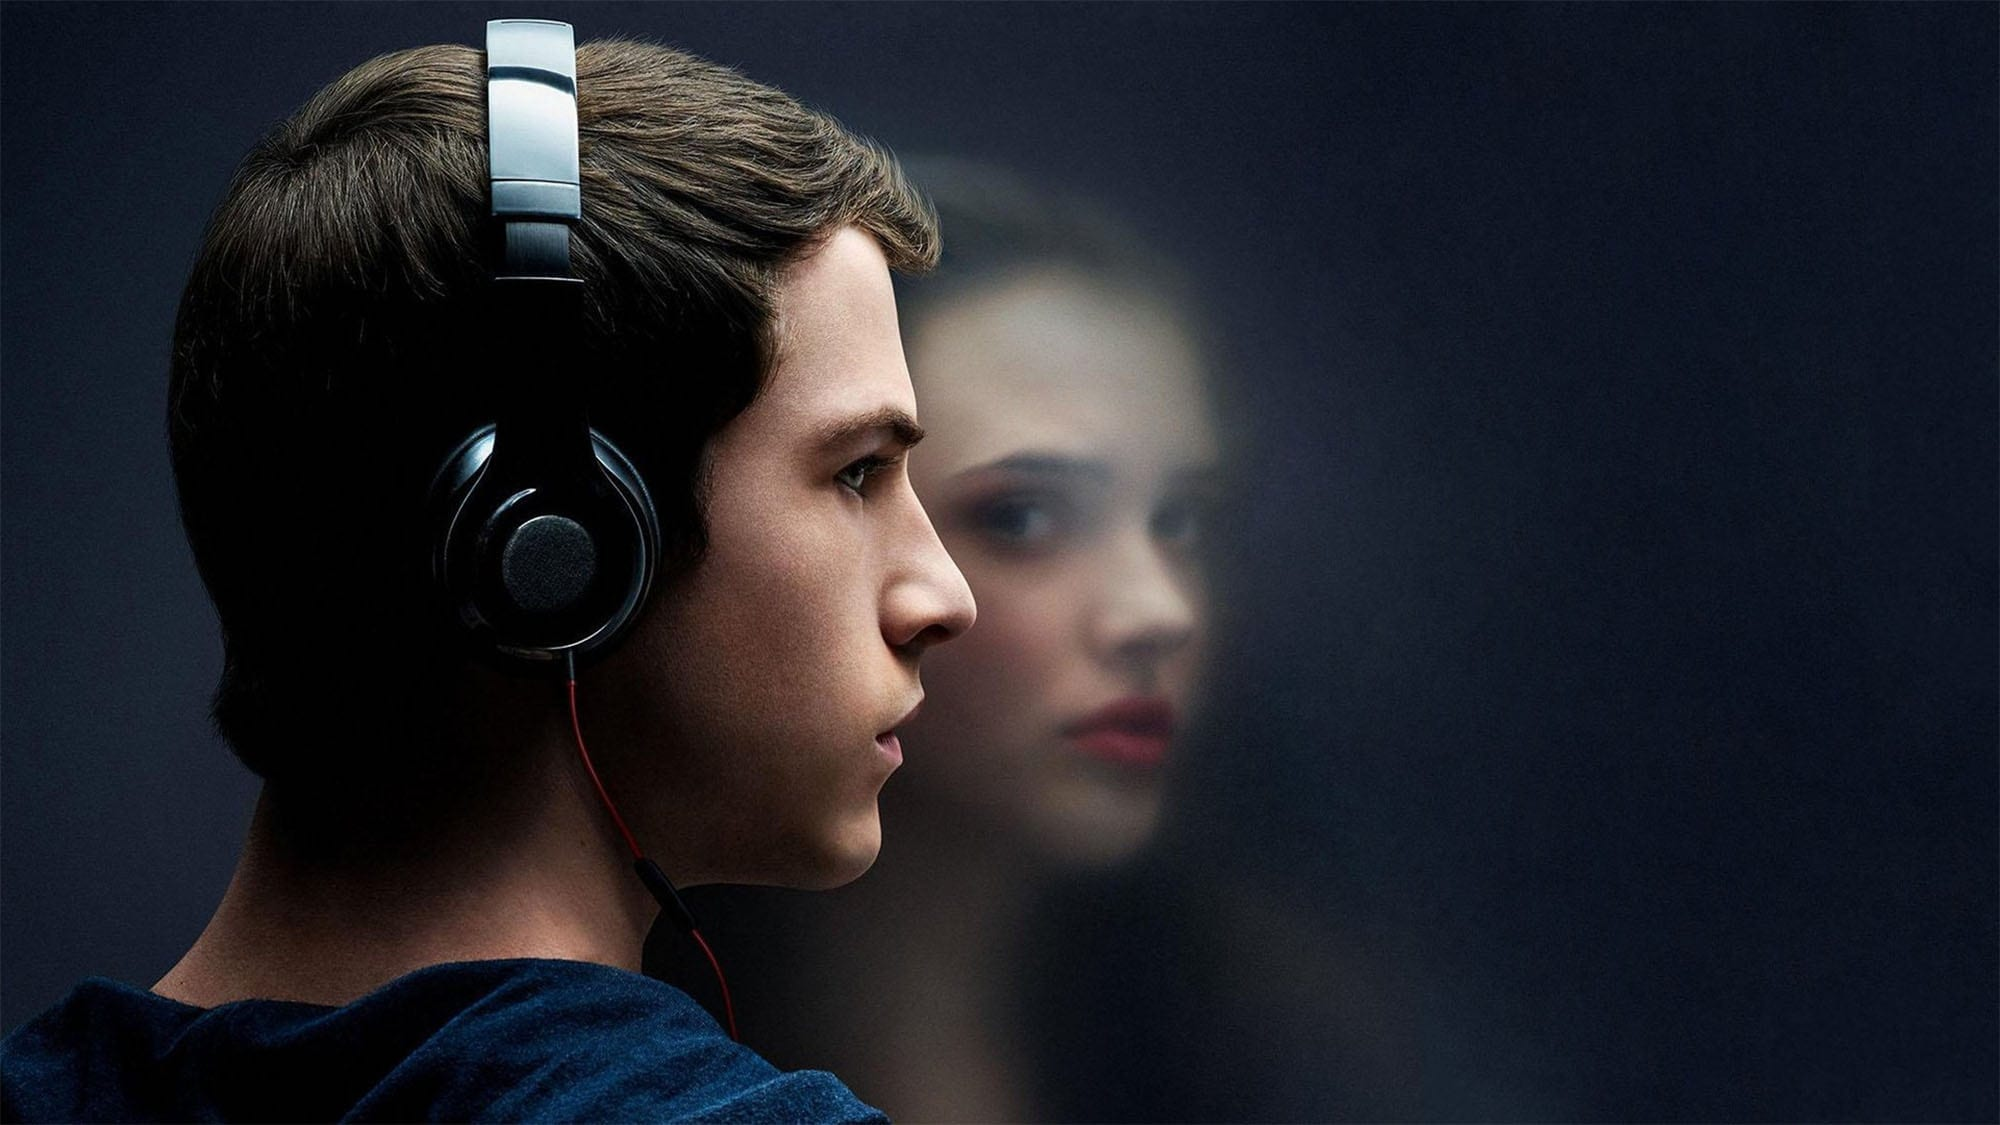 Hats off to Netflix and sucks to be you Parents Television Council – the streaming giant has decided to renew '13 Reasons Why' for a third season. Here are 13 reasons why we're stoked '13 Reasons Why' will be returning for a third season.